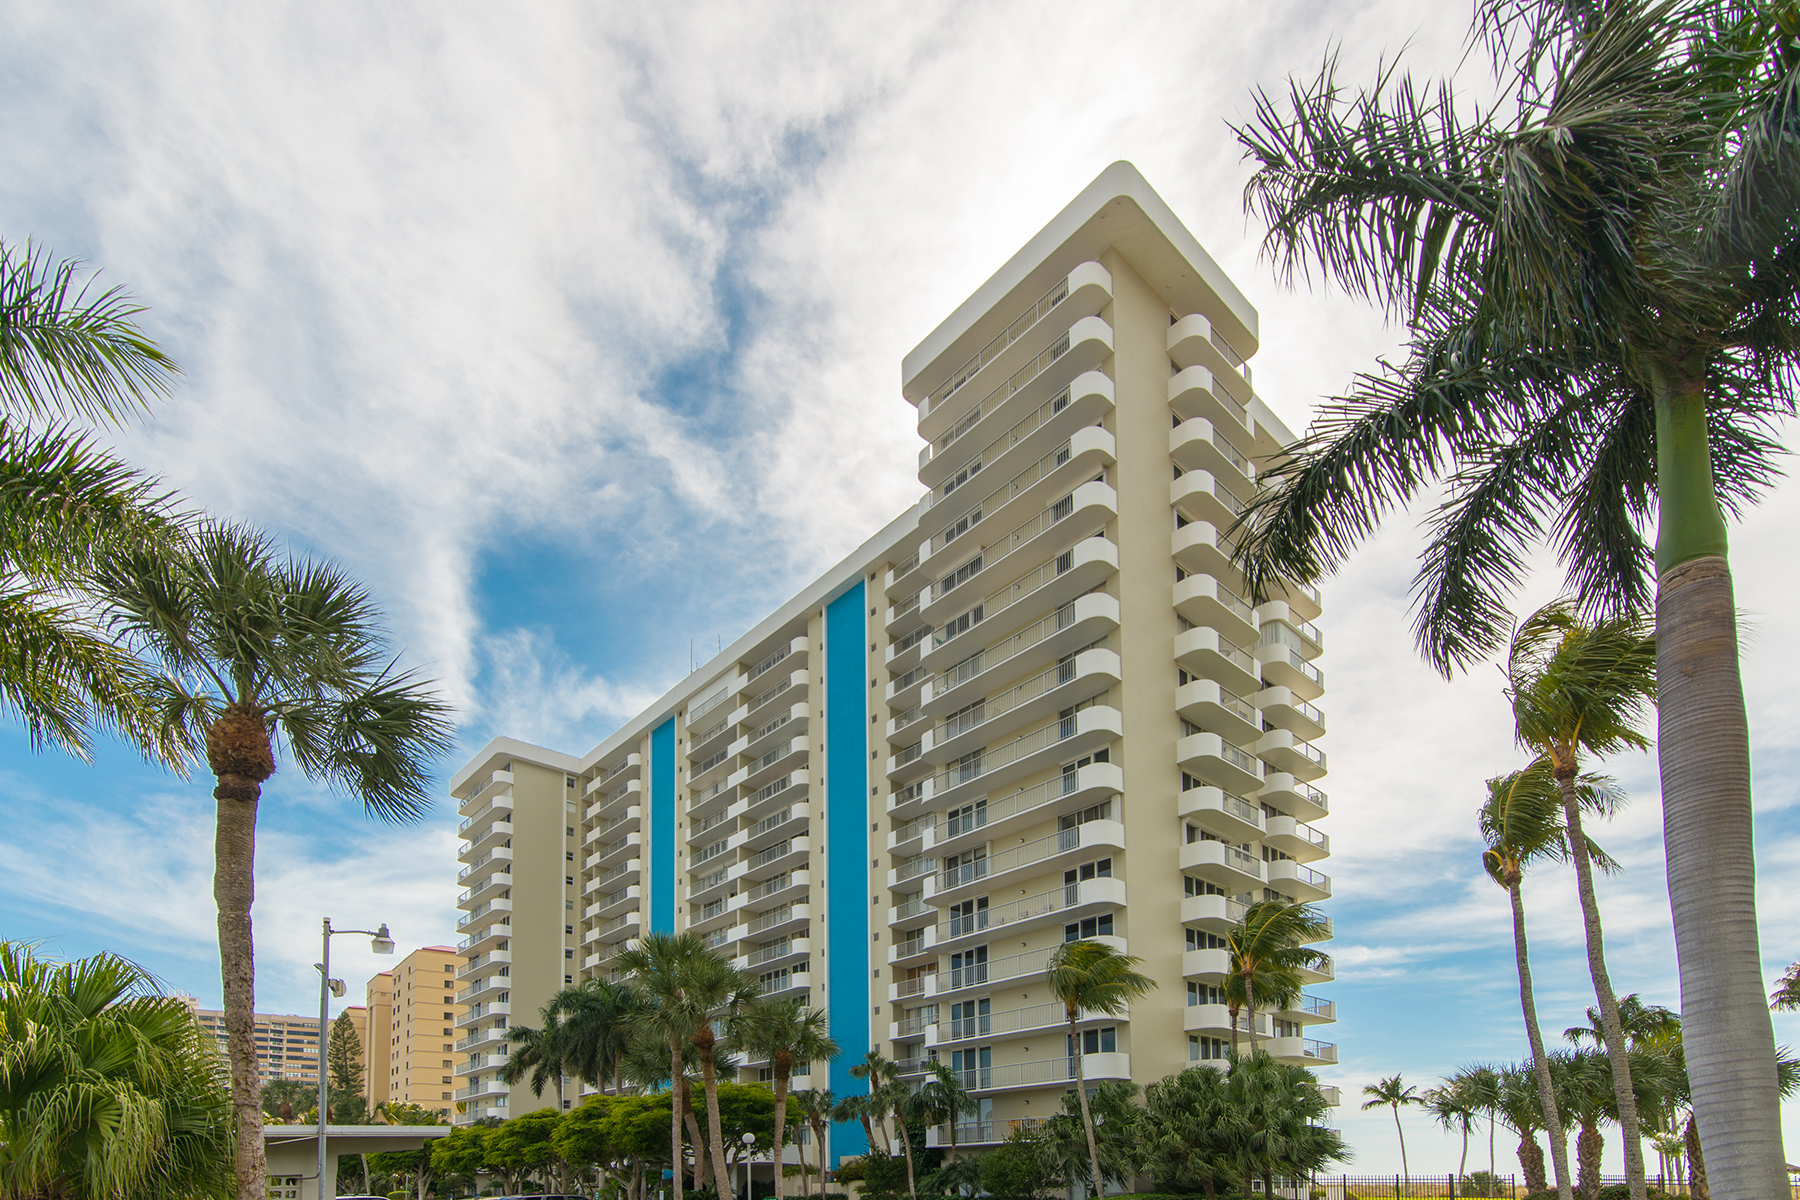 Condominium for Sale at MARCO ISLAND - ADMIRALTY S 140 Seaview Ct S 1104S Marco Island, Florida, 34145 United States